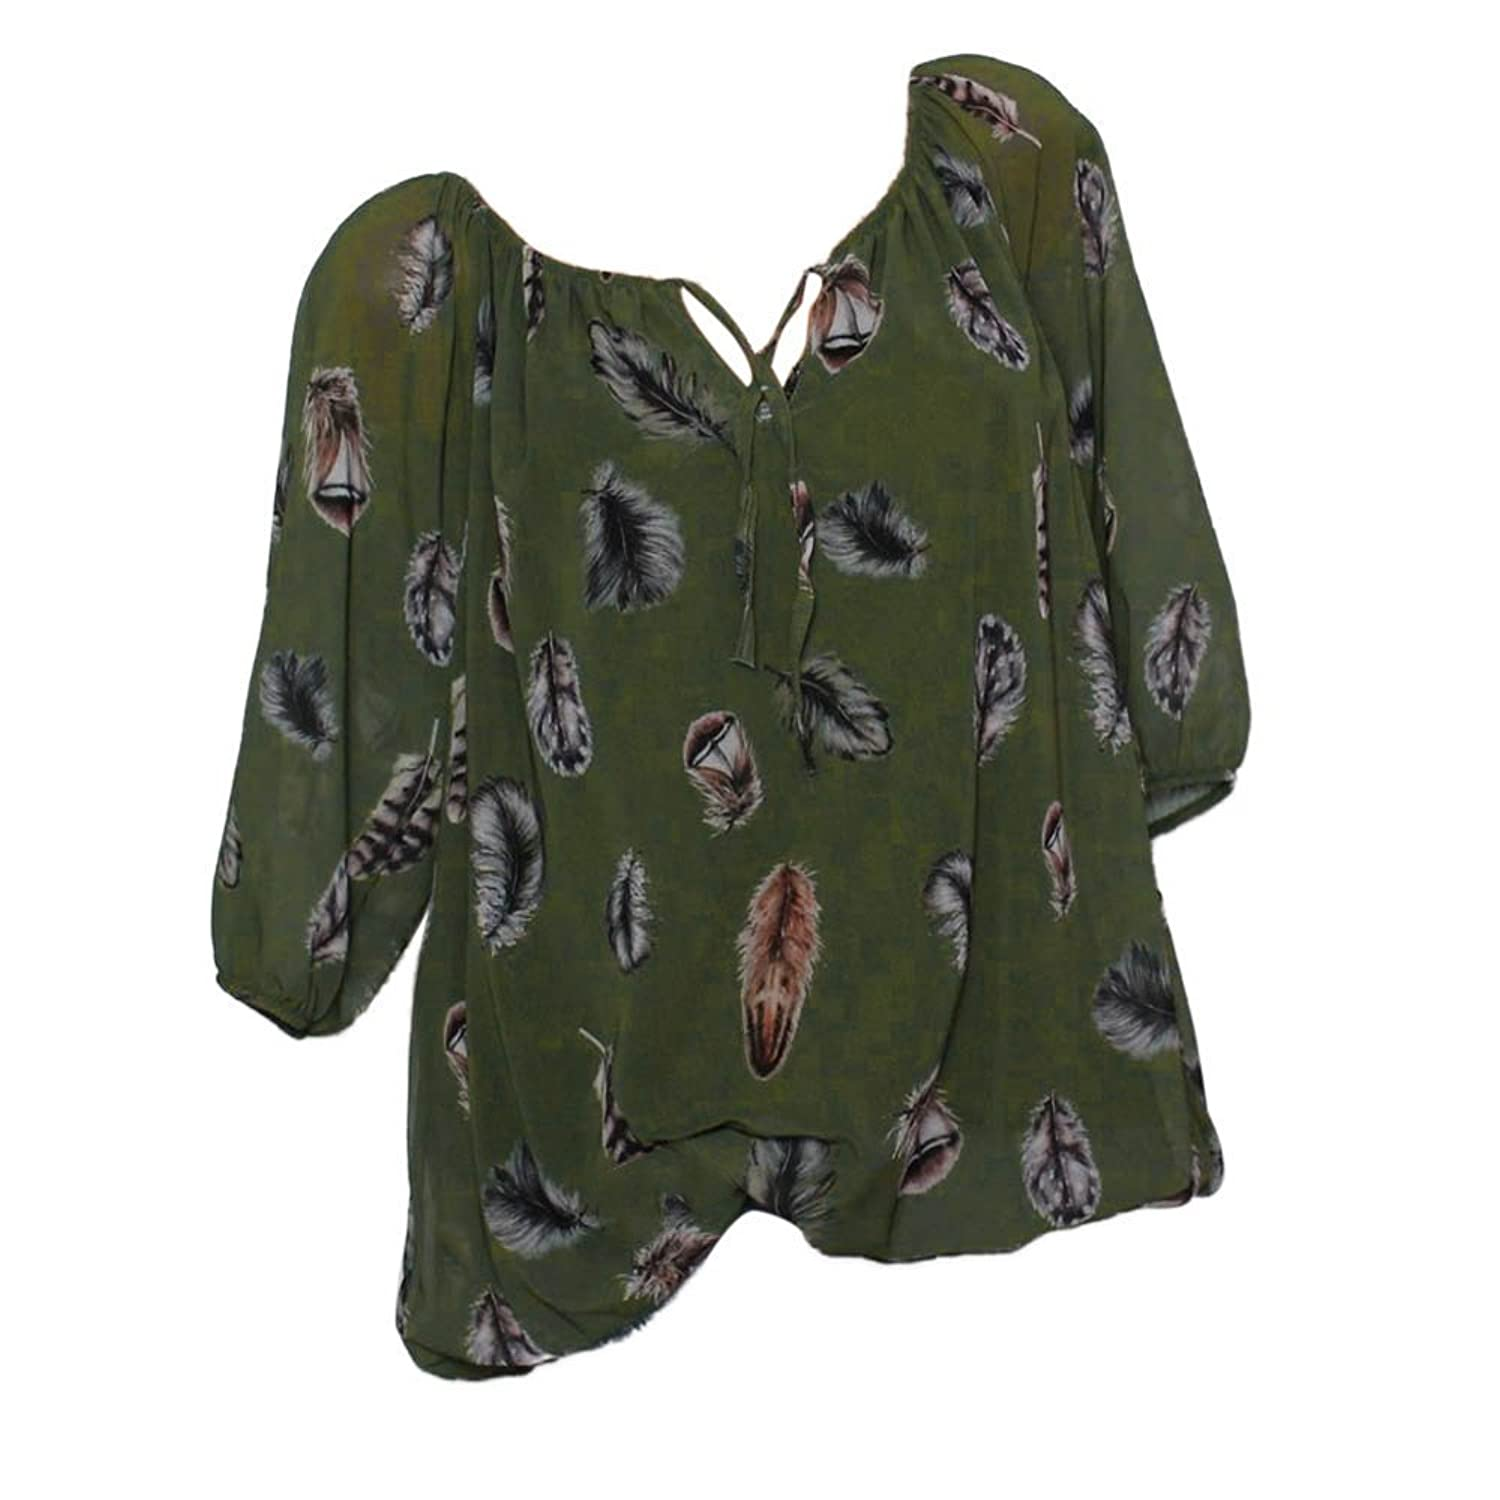 75ac86aa1c97e9 Top 10 wholesale Plus Size Holiday Sweaters - Chinabrands.com